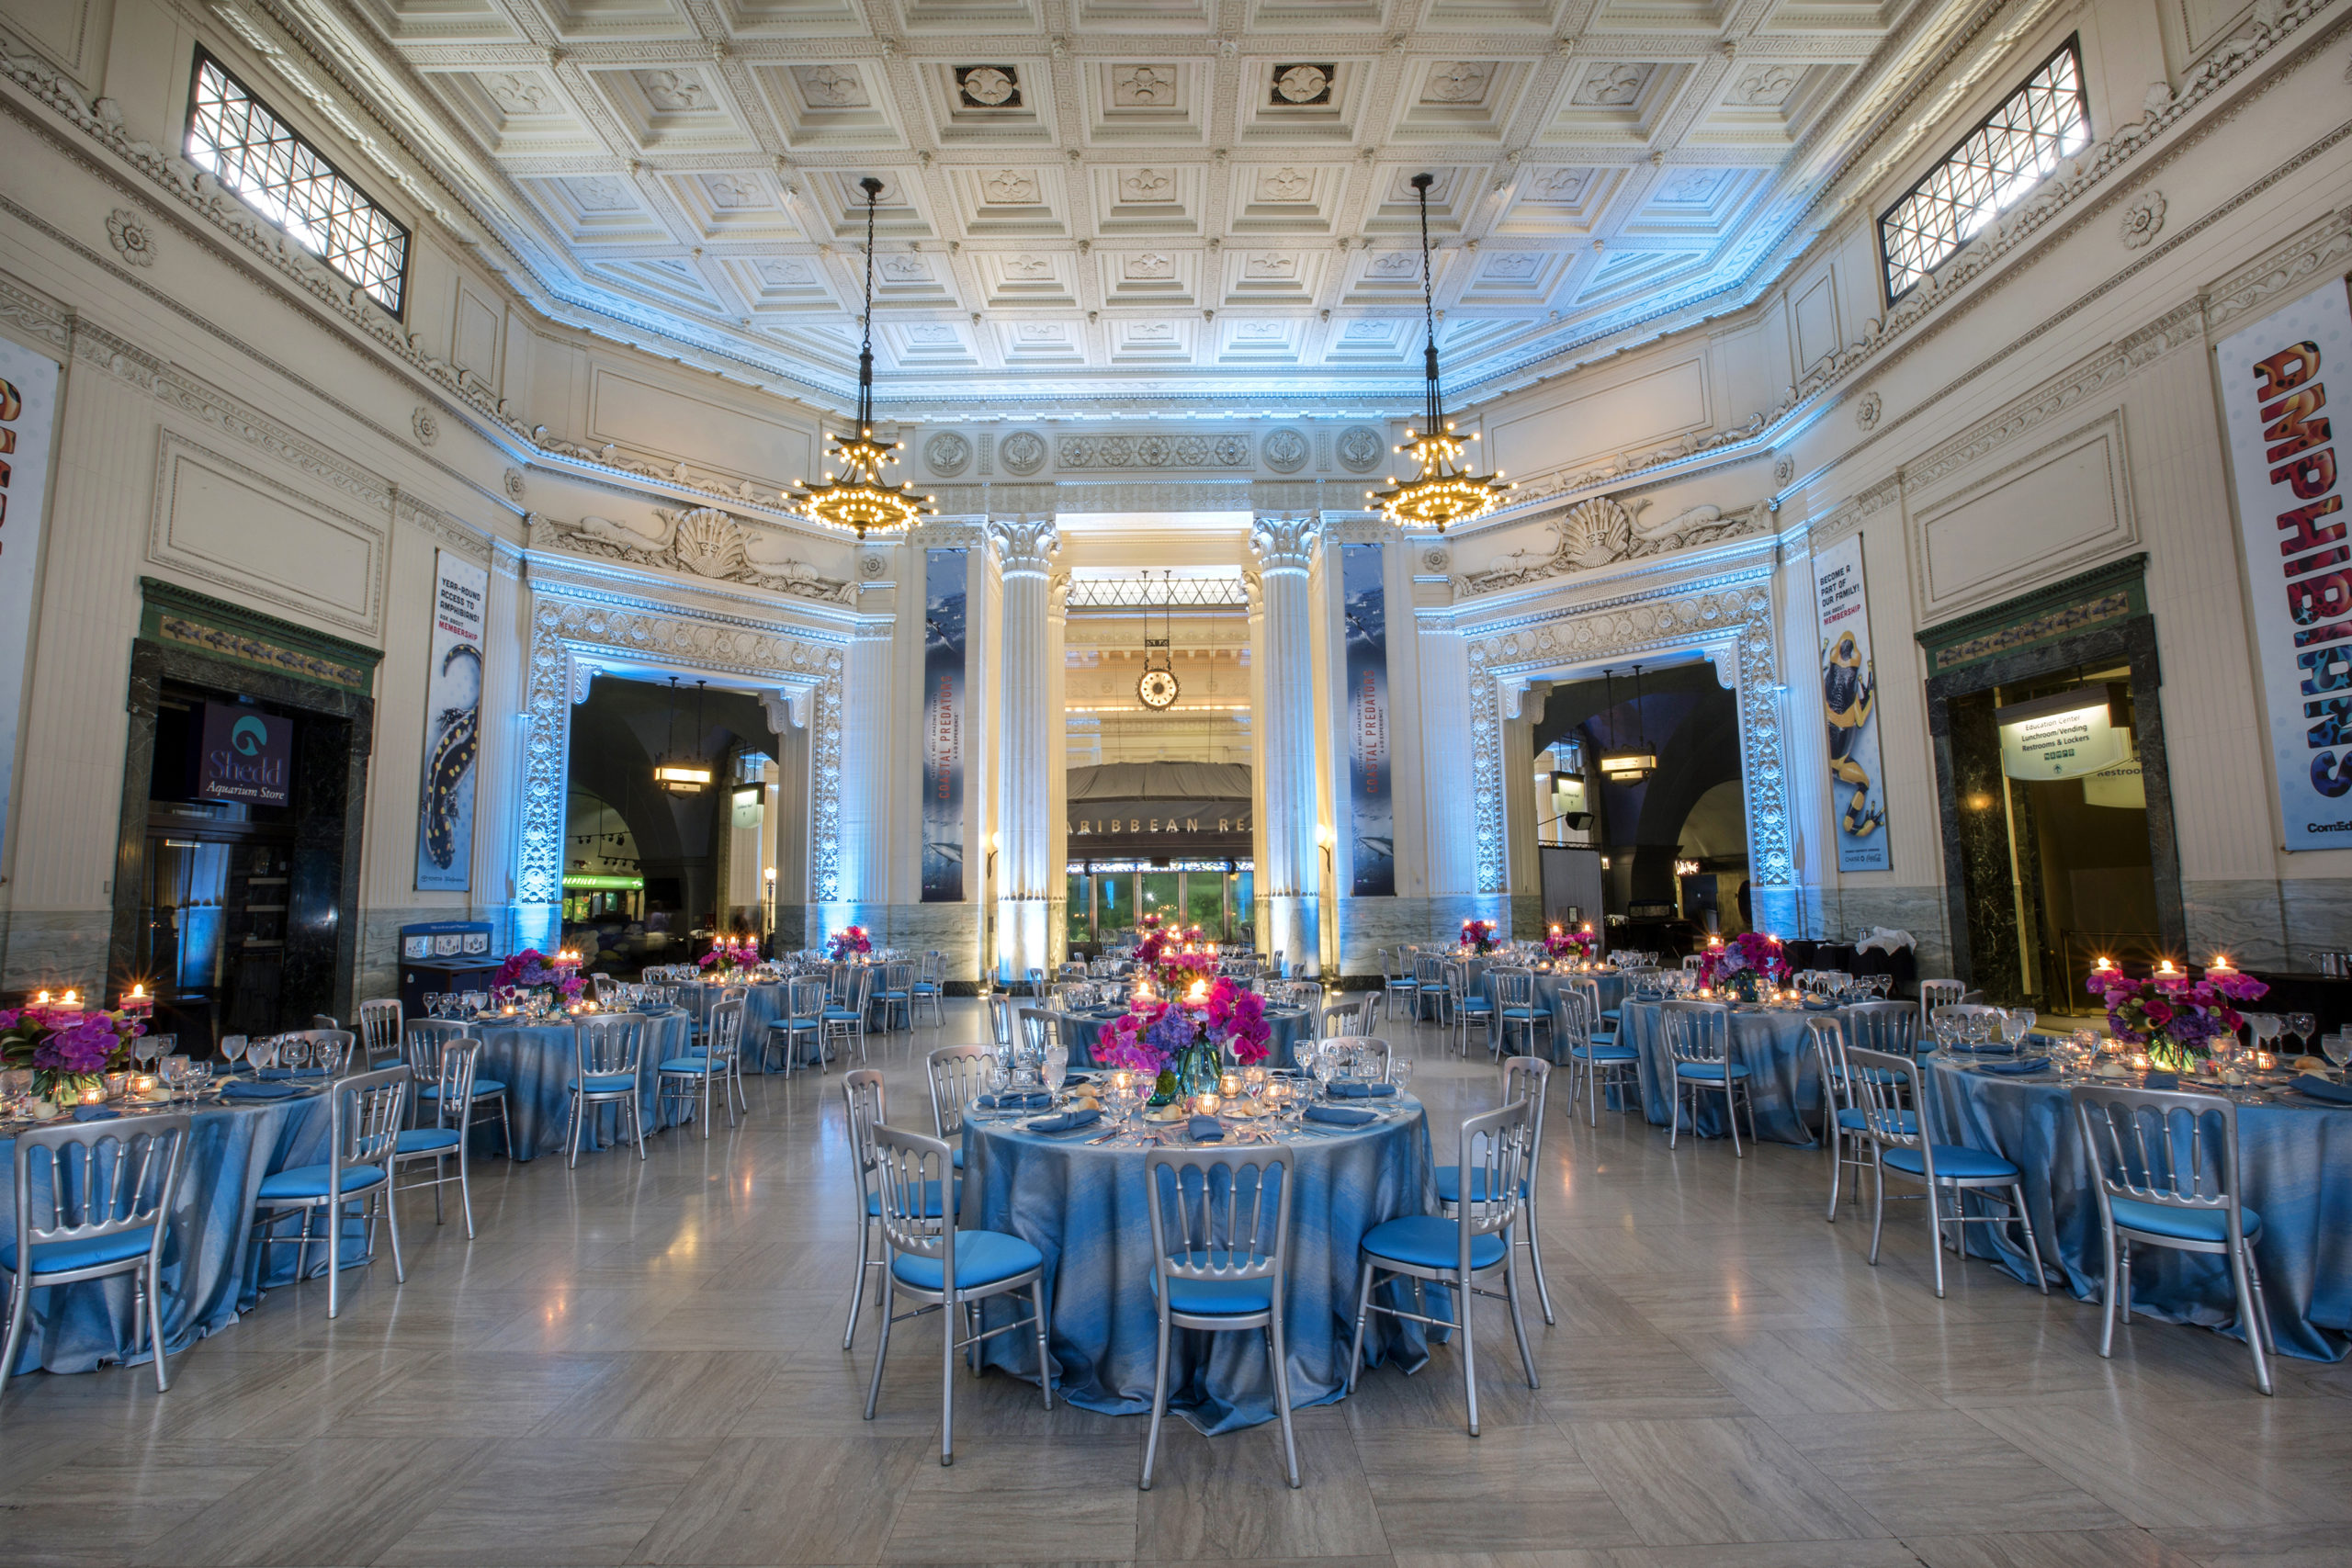 Special Event set up at Shedd Aquarium